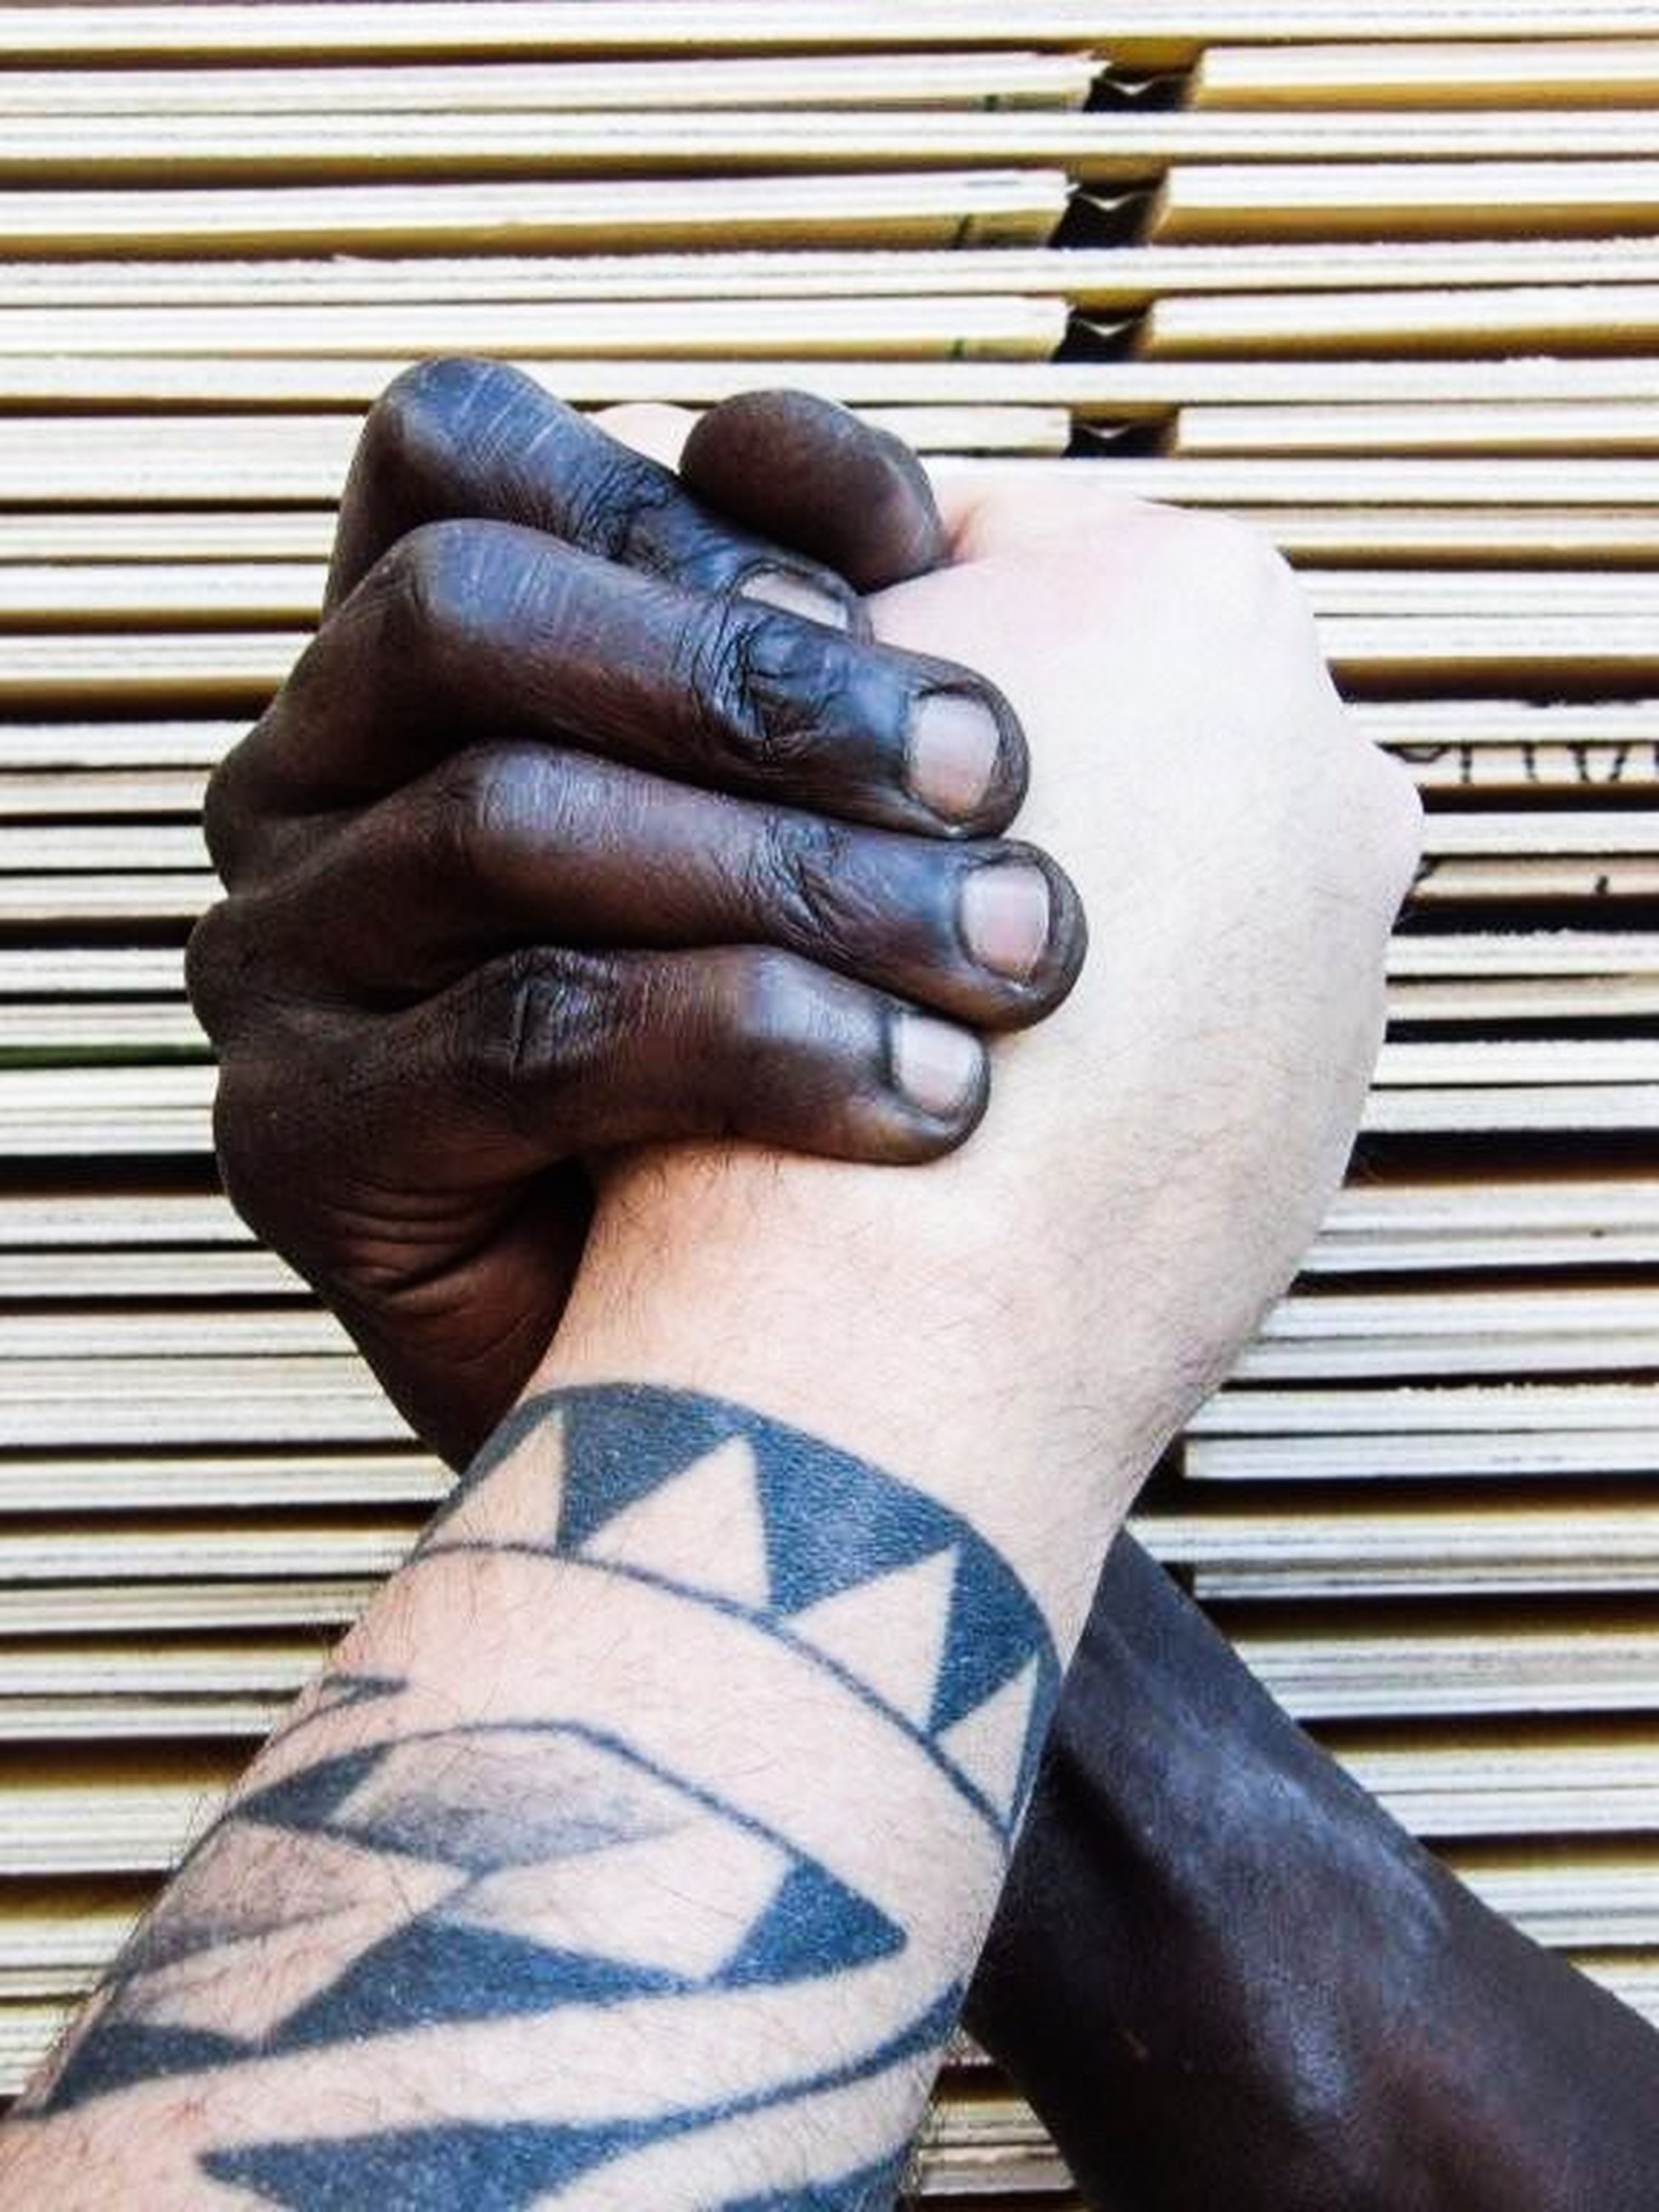 human body part, human hand, close-up, day, real people, men, one person, adult, outdoors, lifestyles, only men, people, adults only